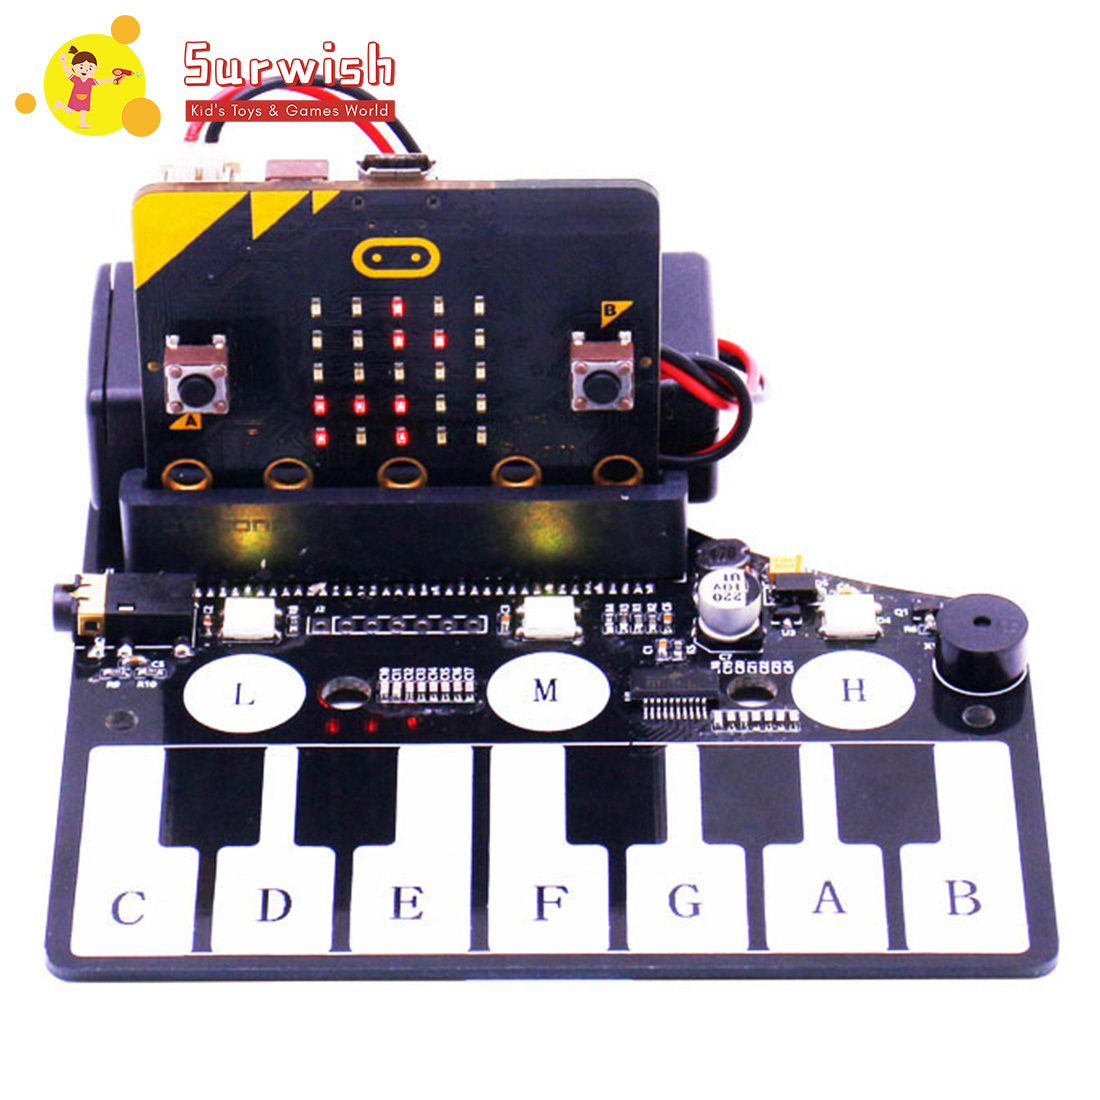 Surwish 1 Pcs Piano Shape Expansion Board Music Development Board With RGB Colored Light Buzzer For Microbit